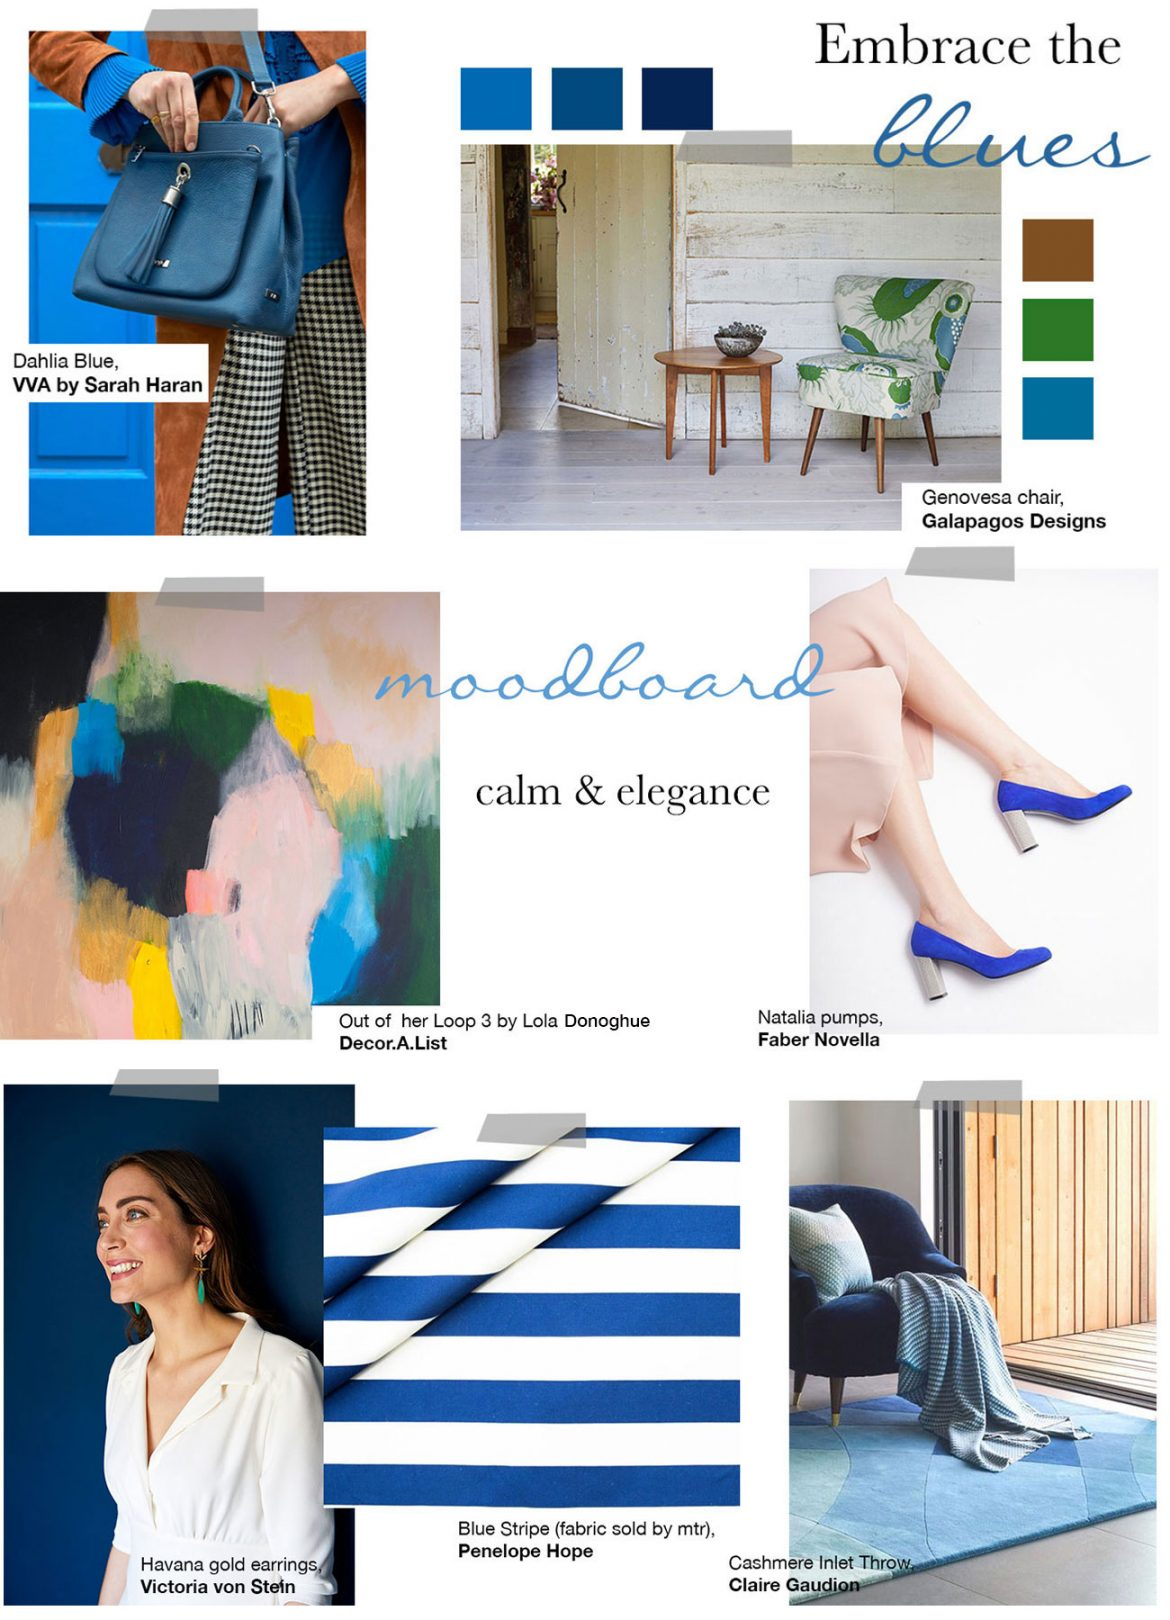 Embrace the blues moodboard